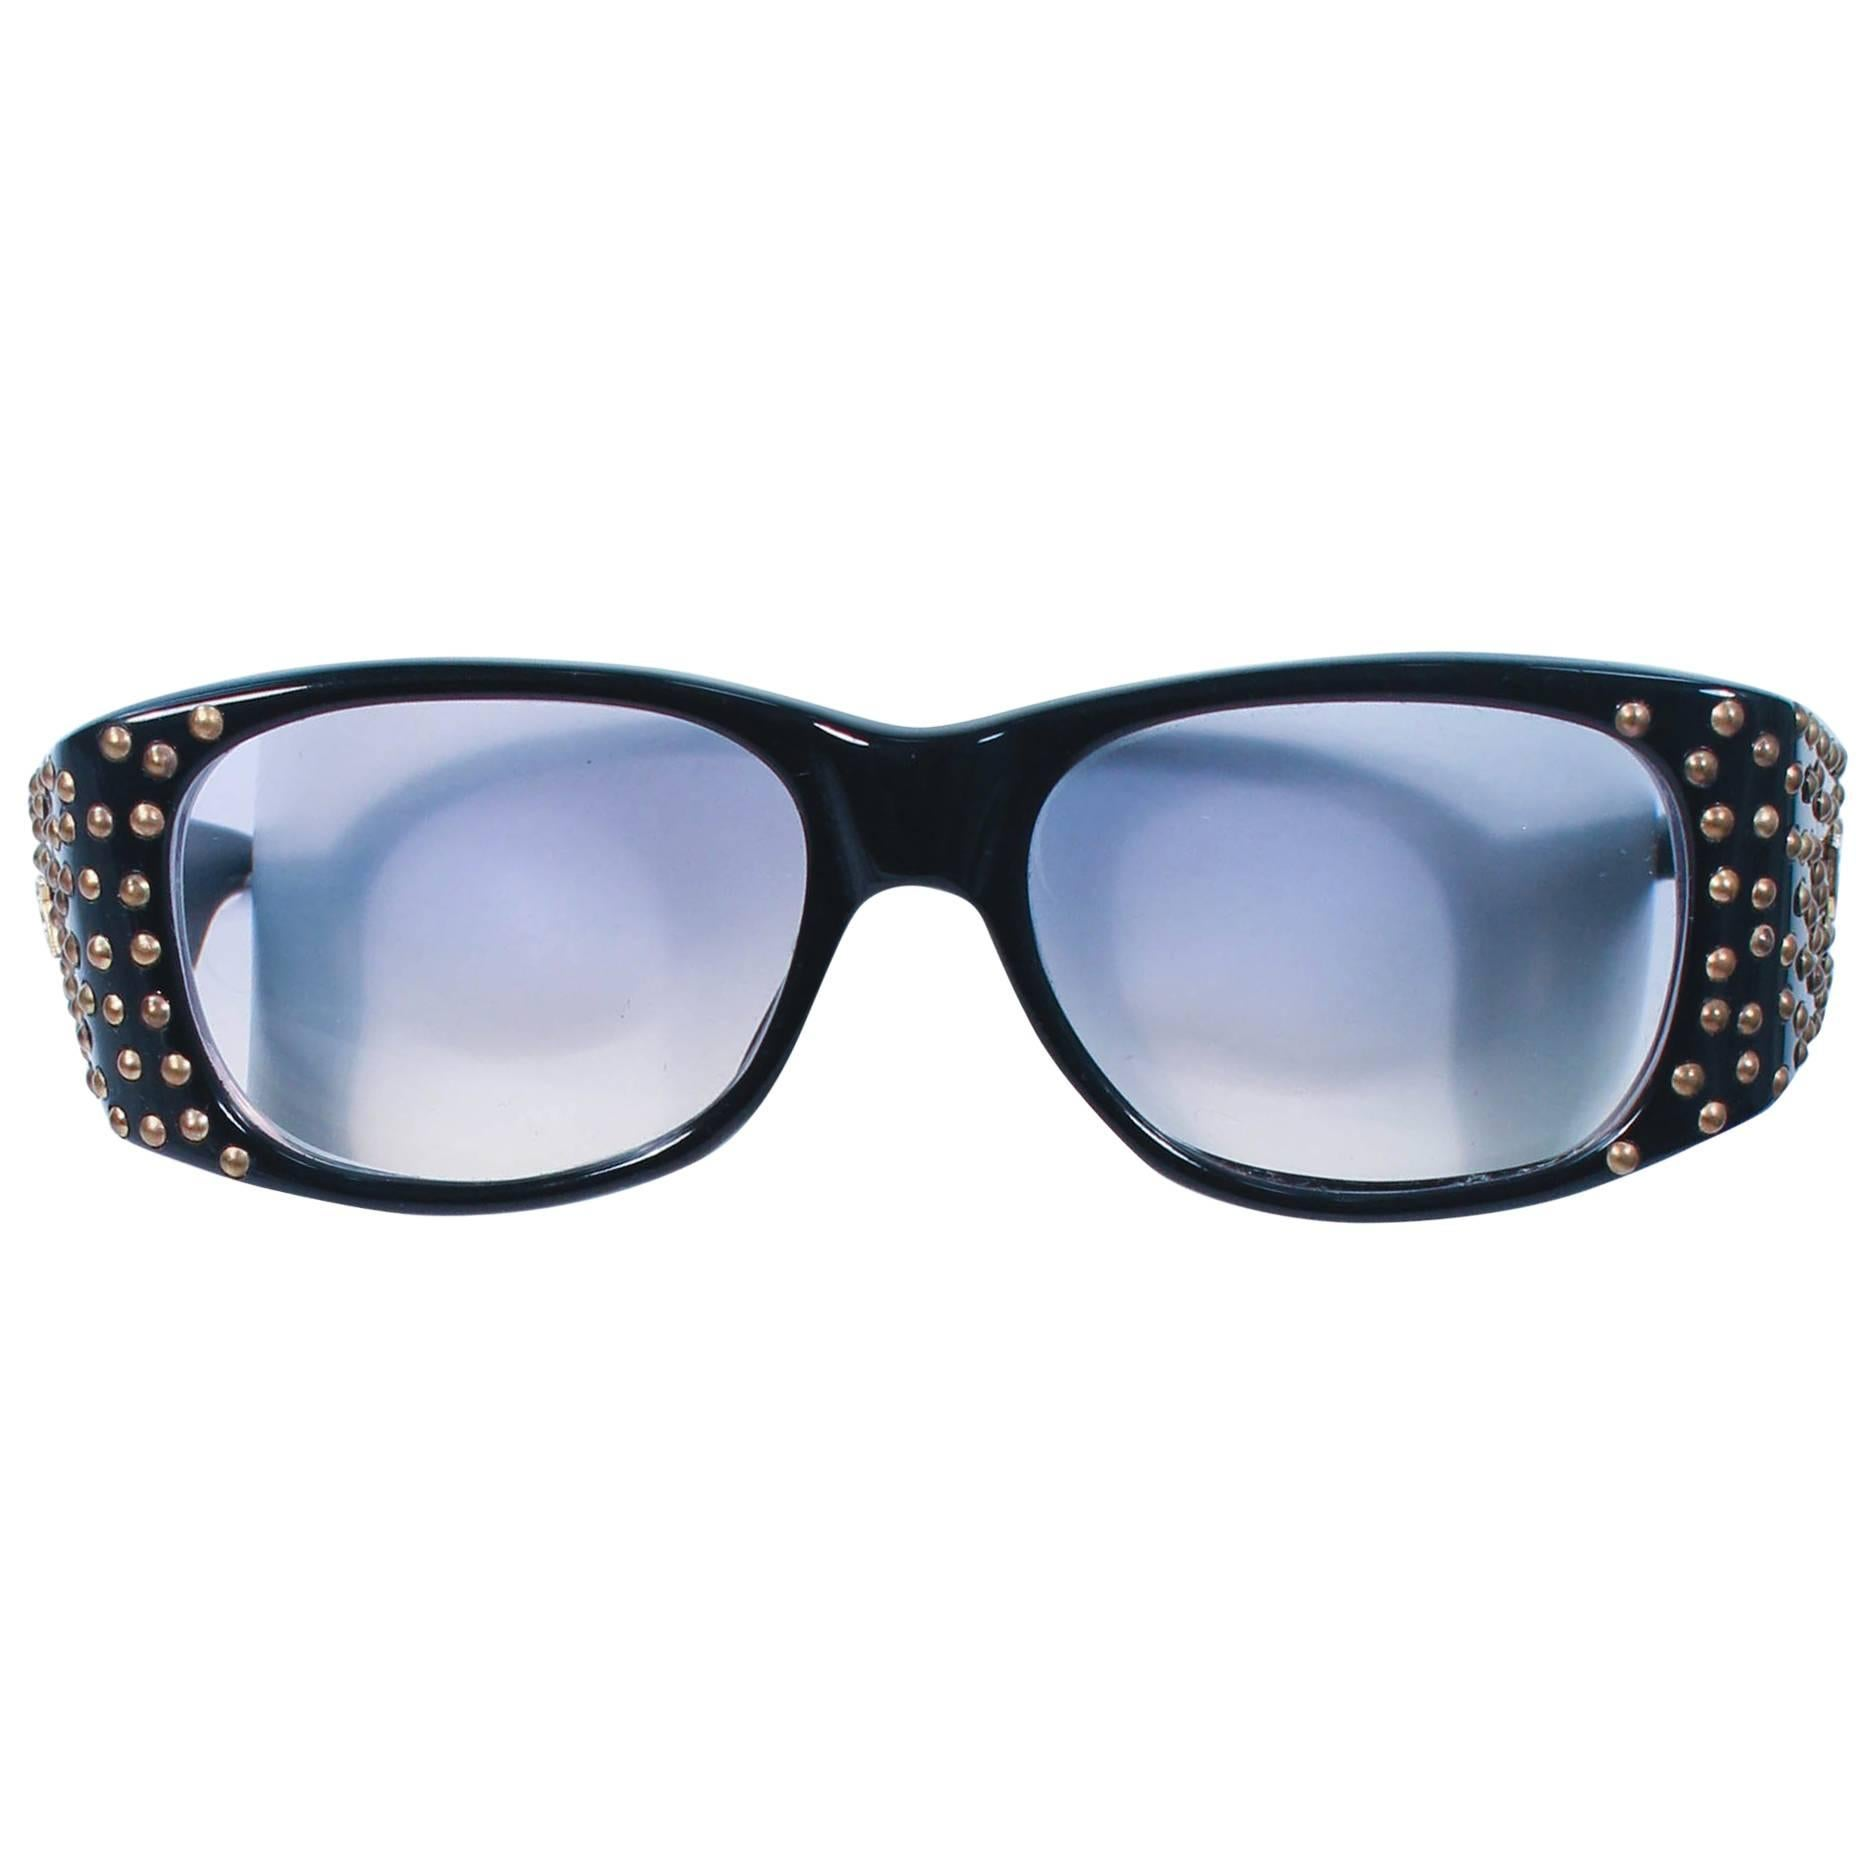 EMMANUELLE KHANH 1980's Black Sunglasses with Gold Metal Stud Accents